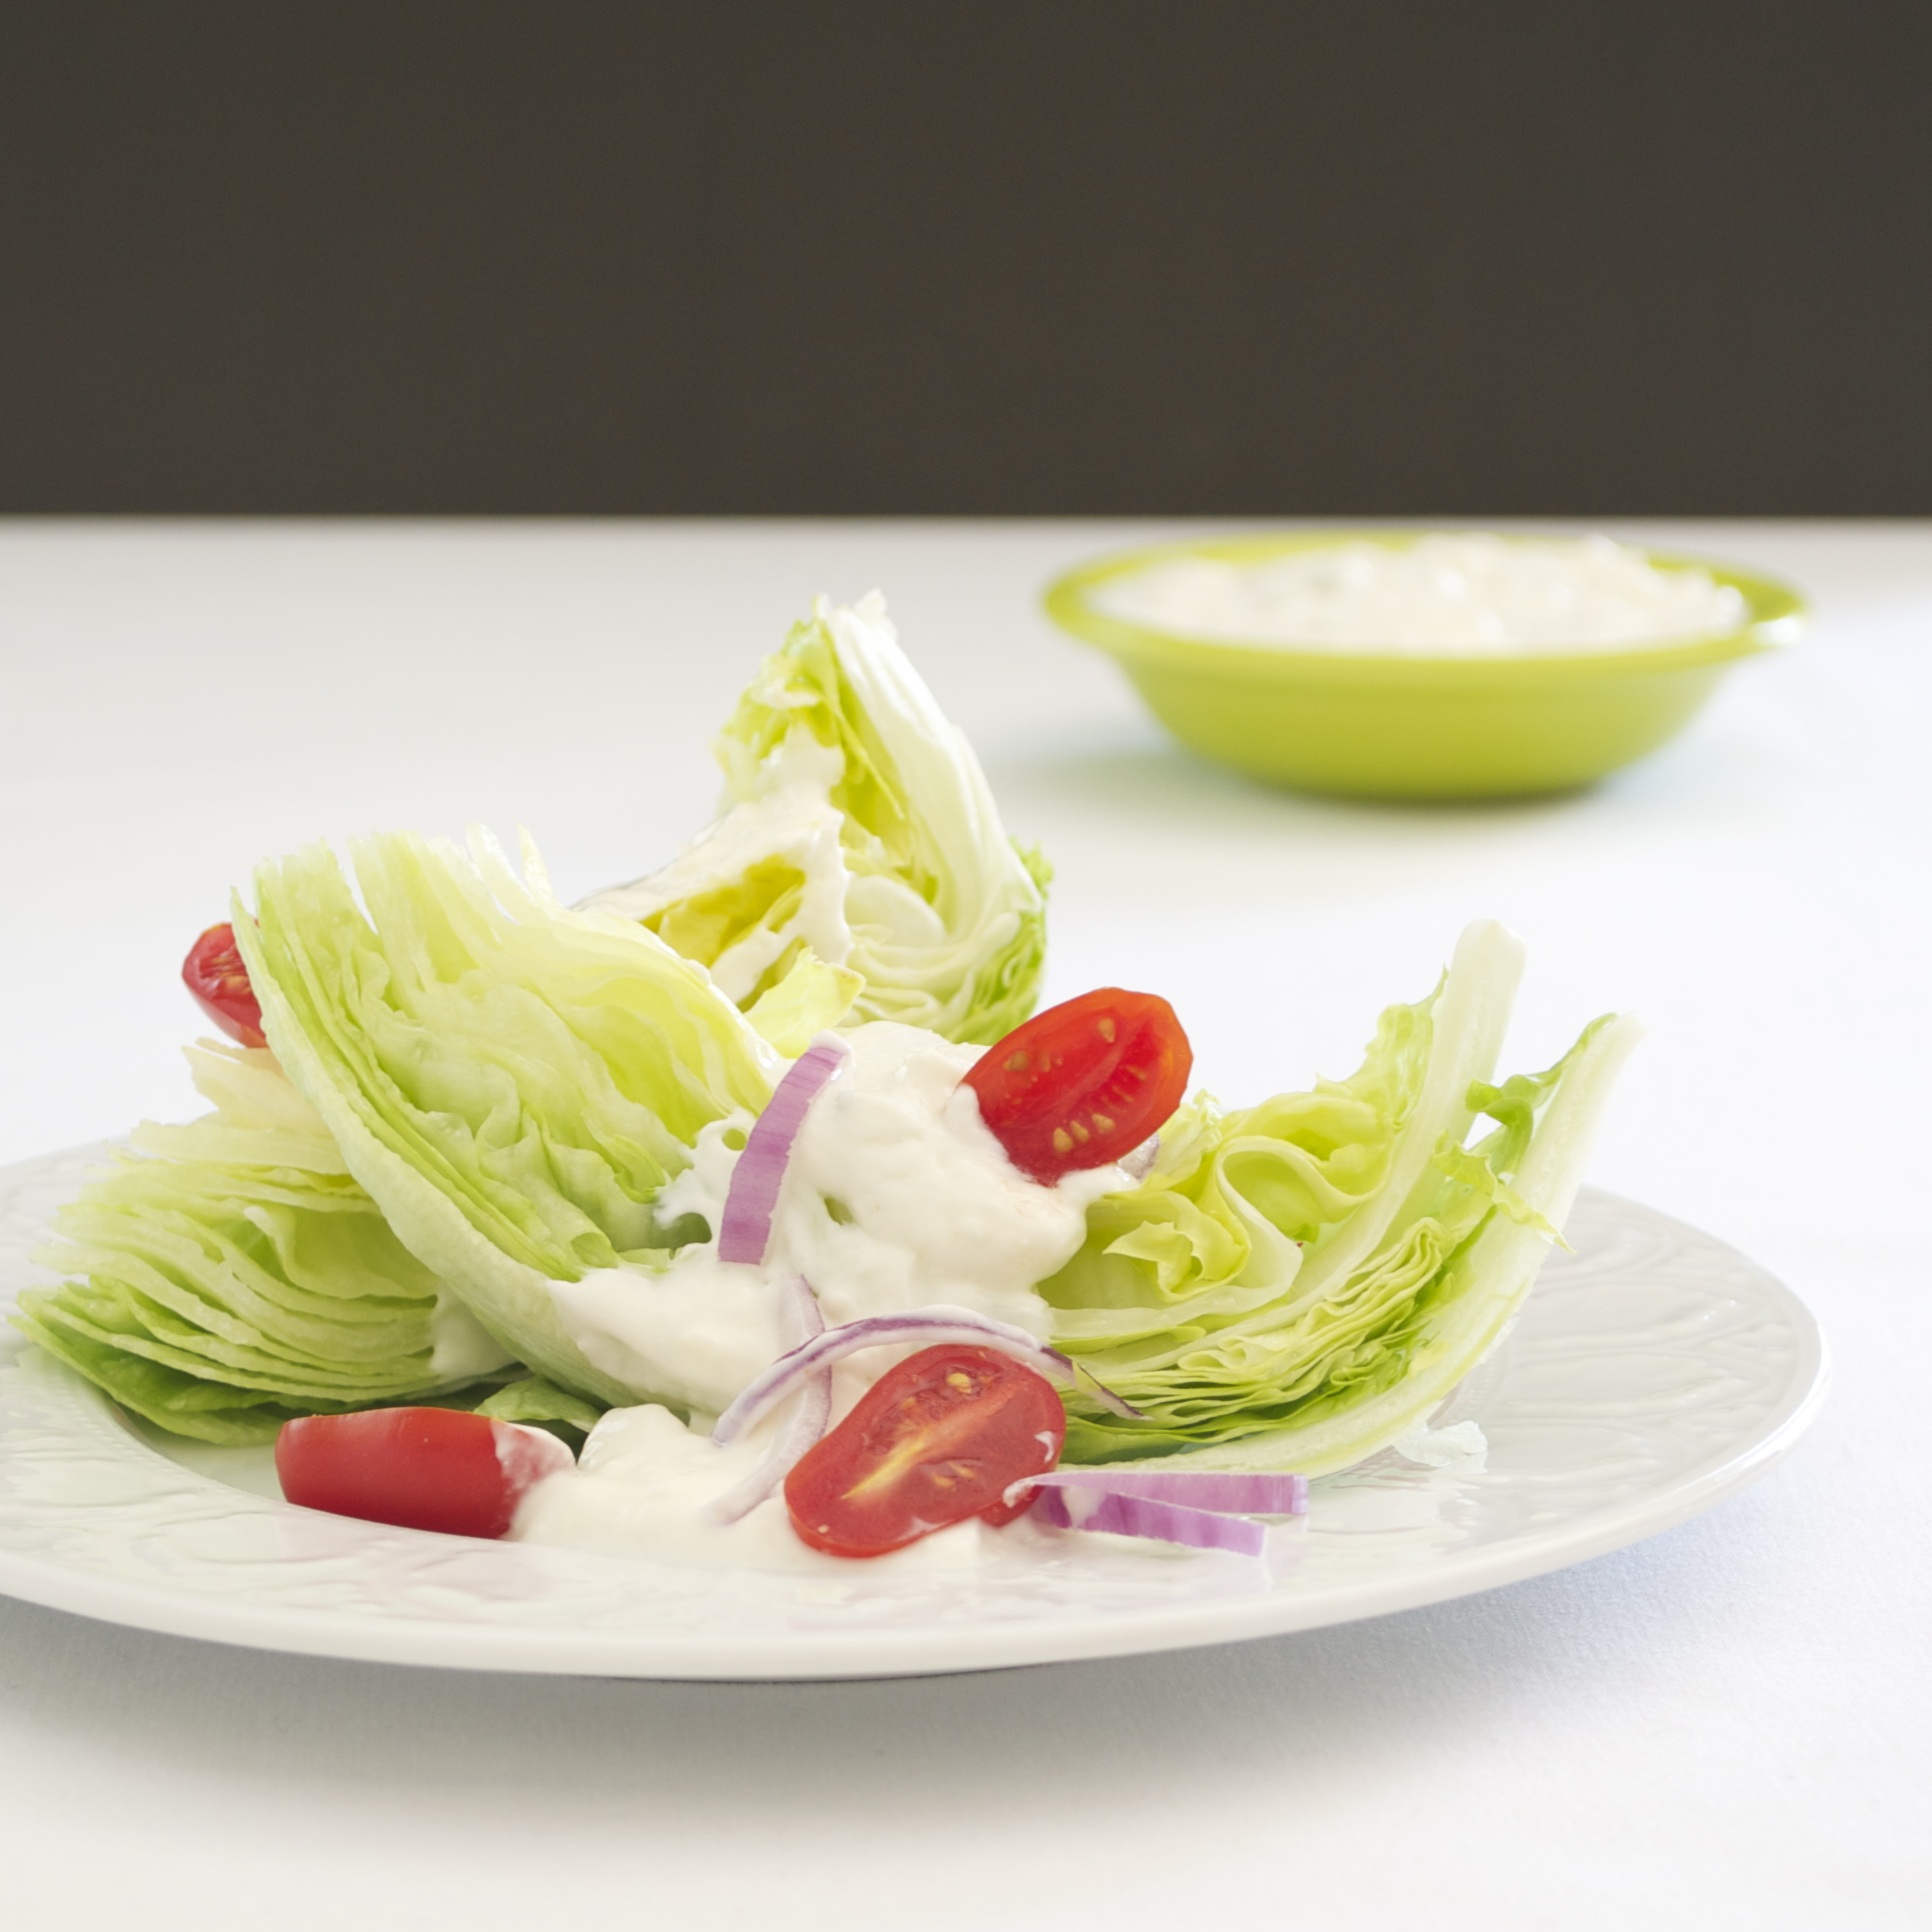 Creamy Blue Cheese Dressing Pictures to pin on Pinterest